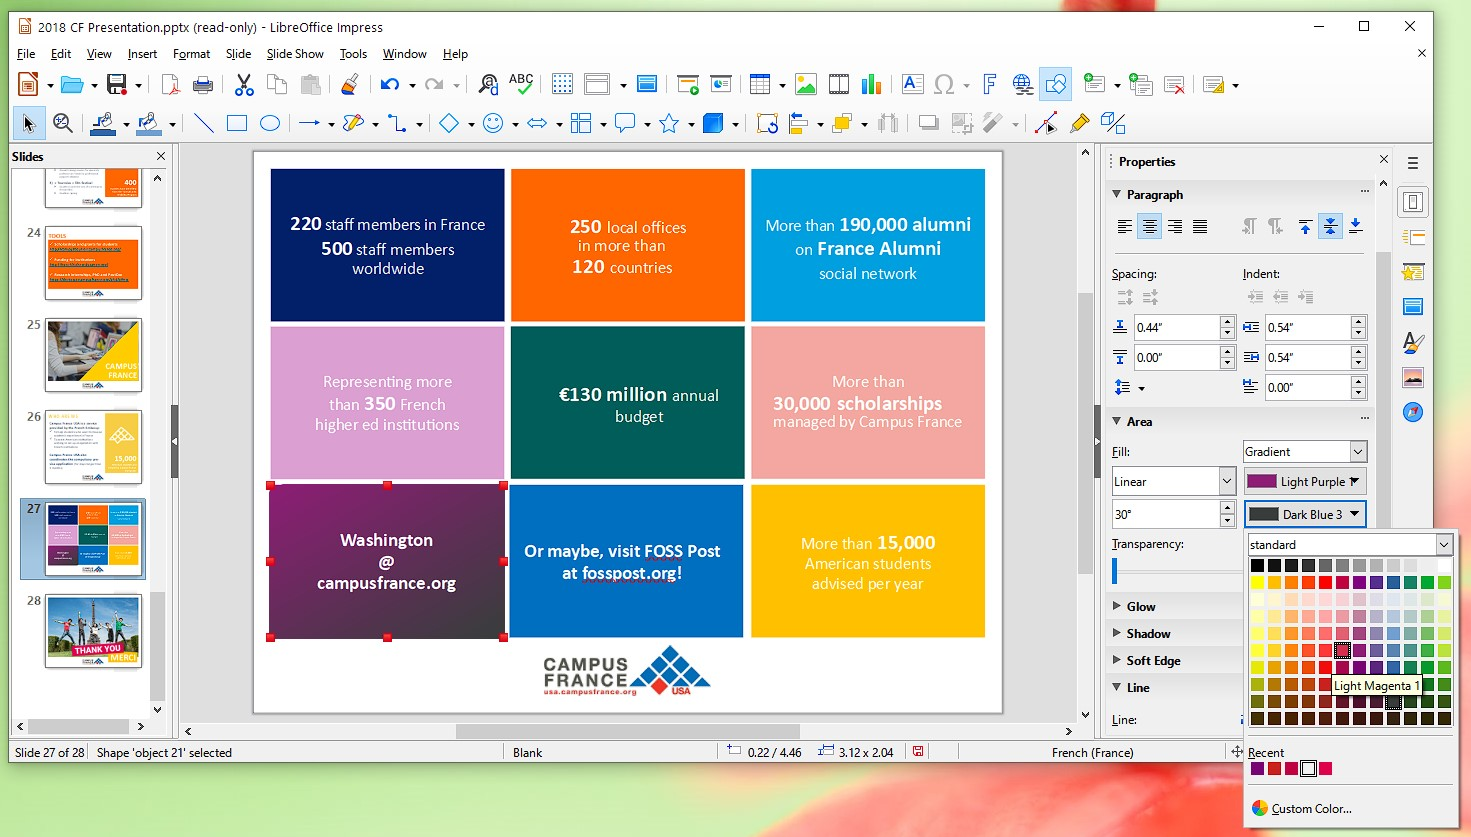 Microsoft office alternative 17 August 6, 2020